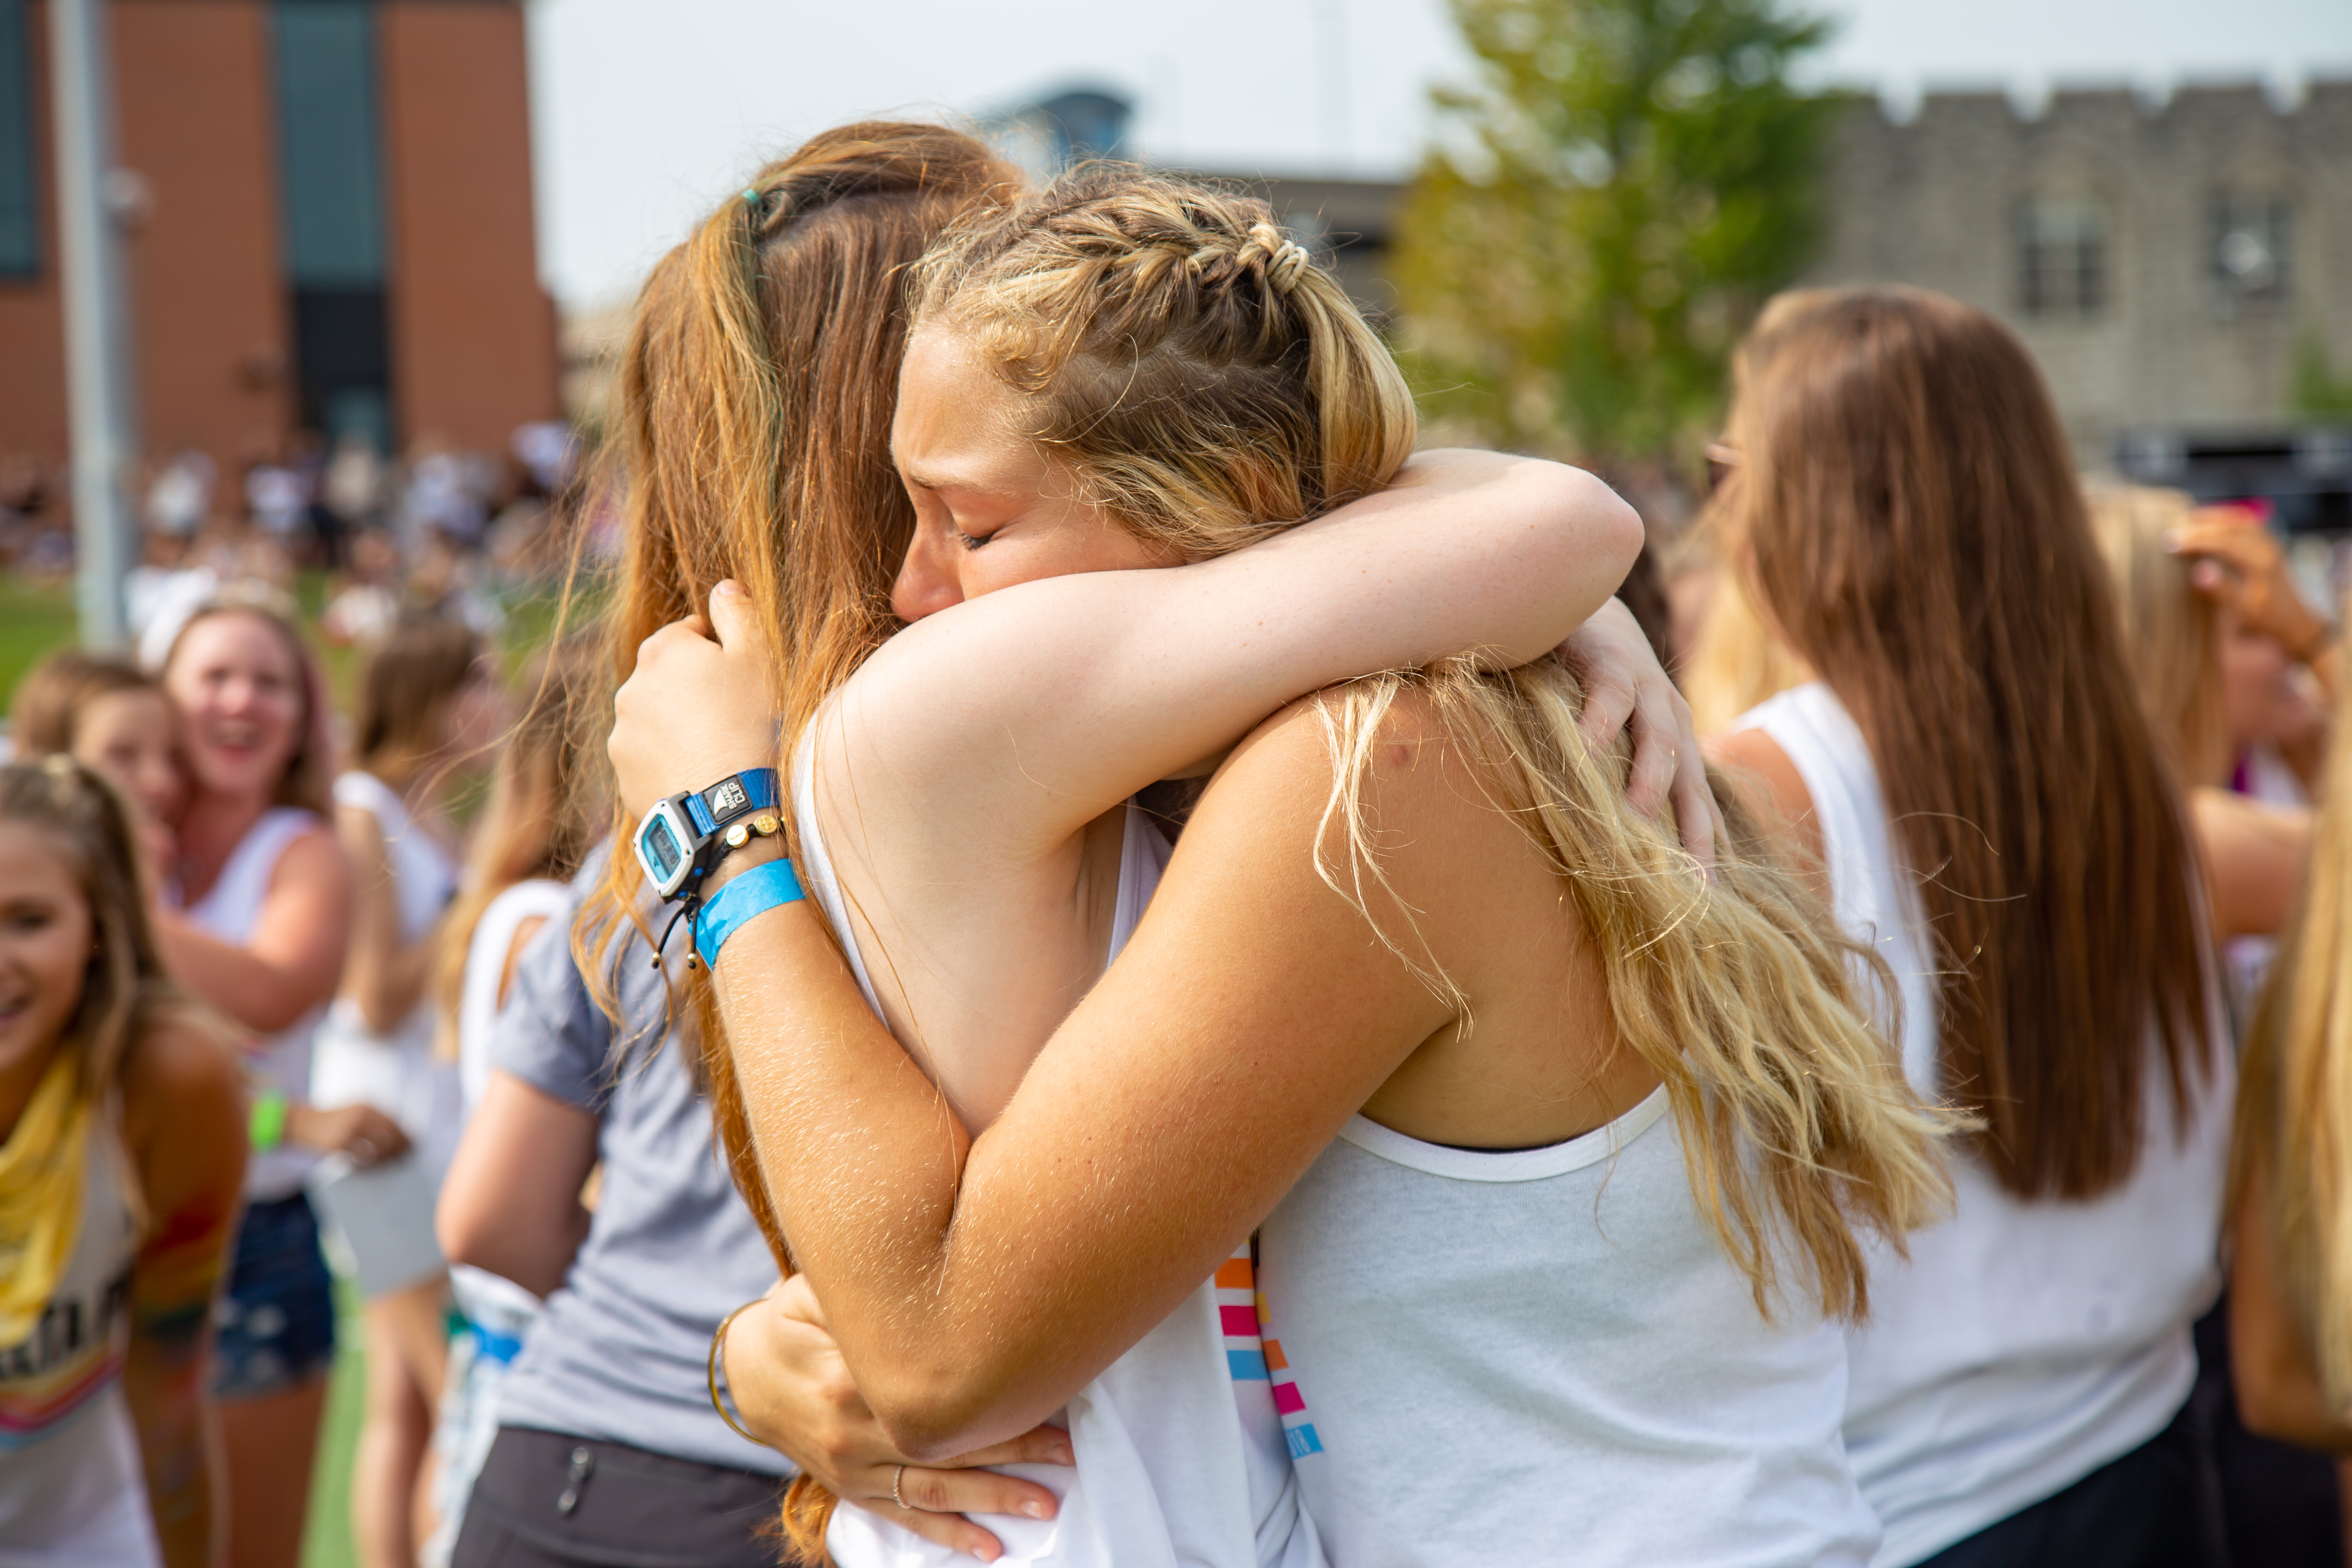 Panhellenic Association's Sorority Bid Day at Stankowski Field on Aug. 18, 2018. Photo by Cassandra Florido